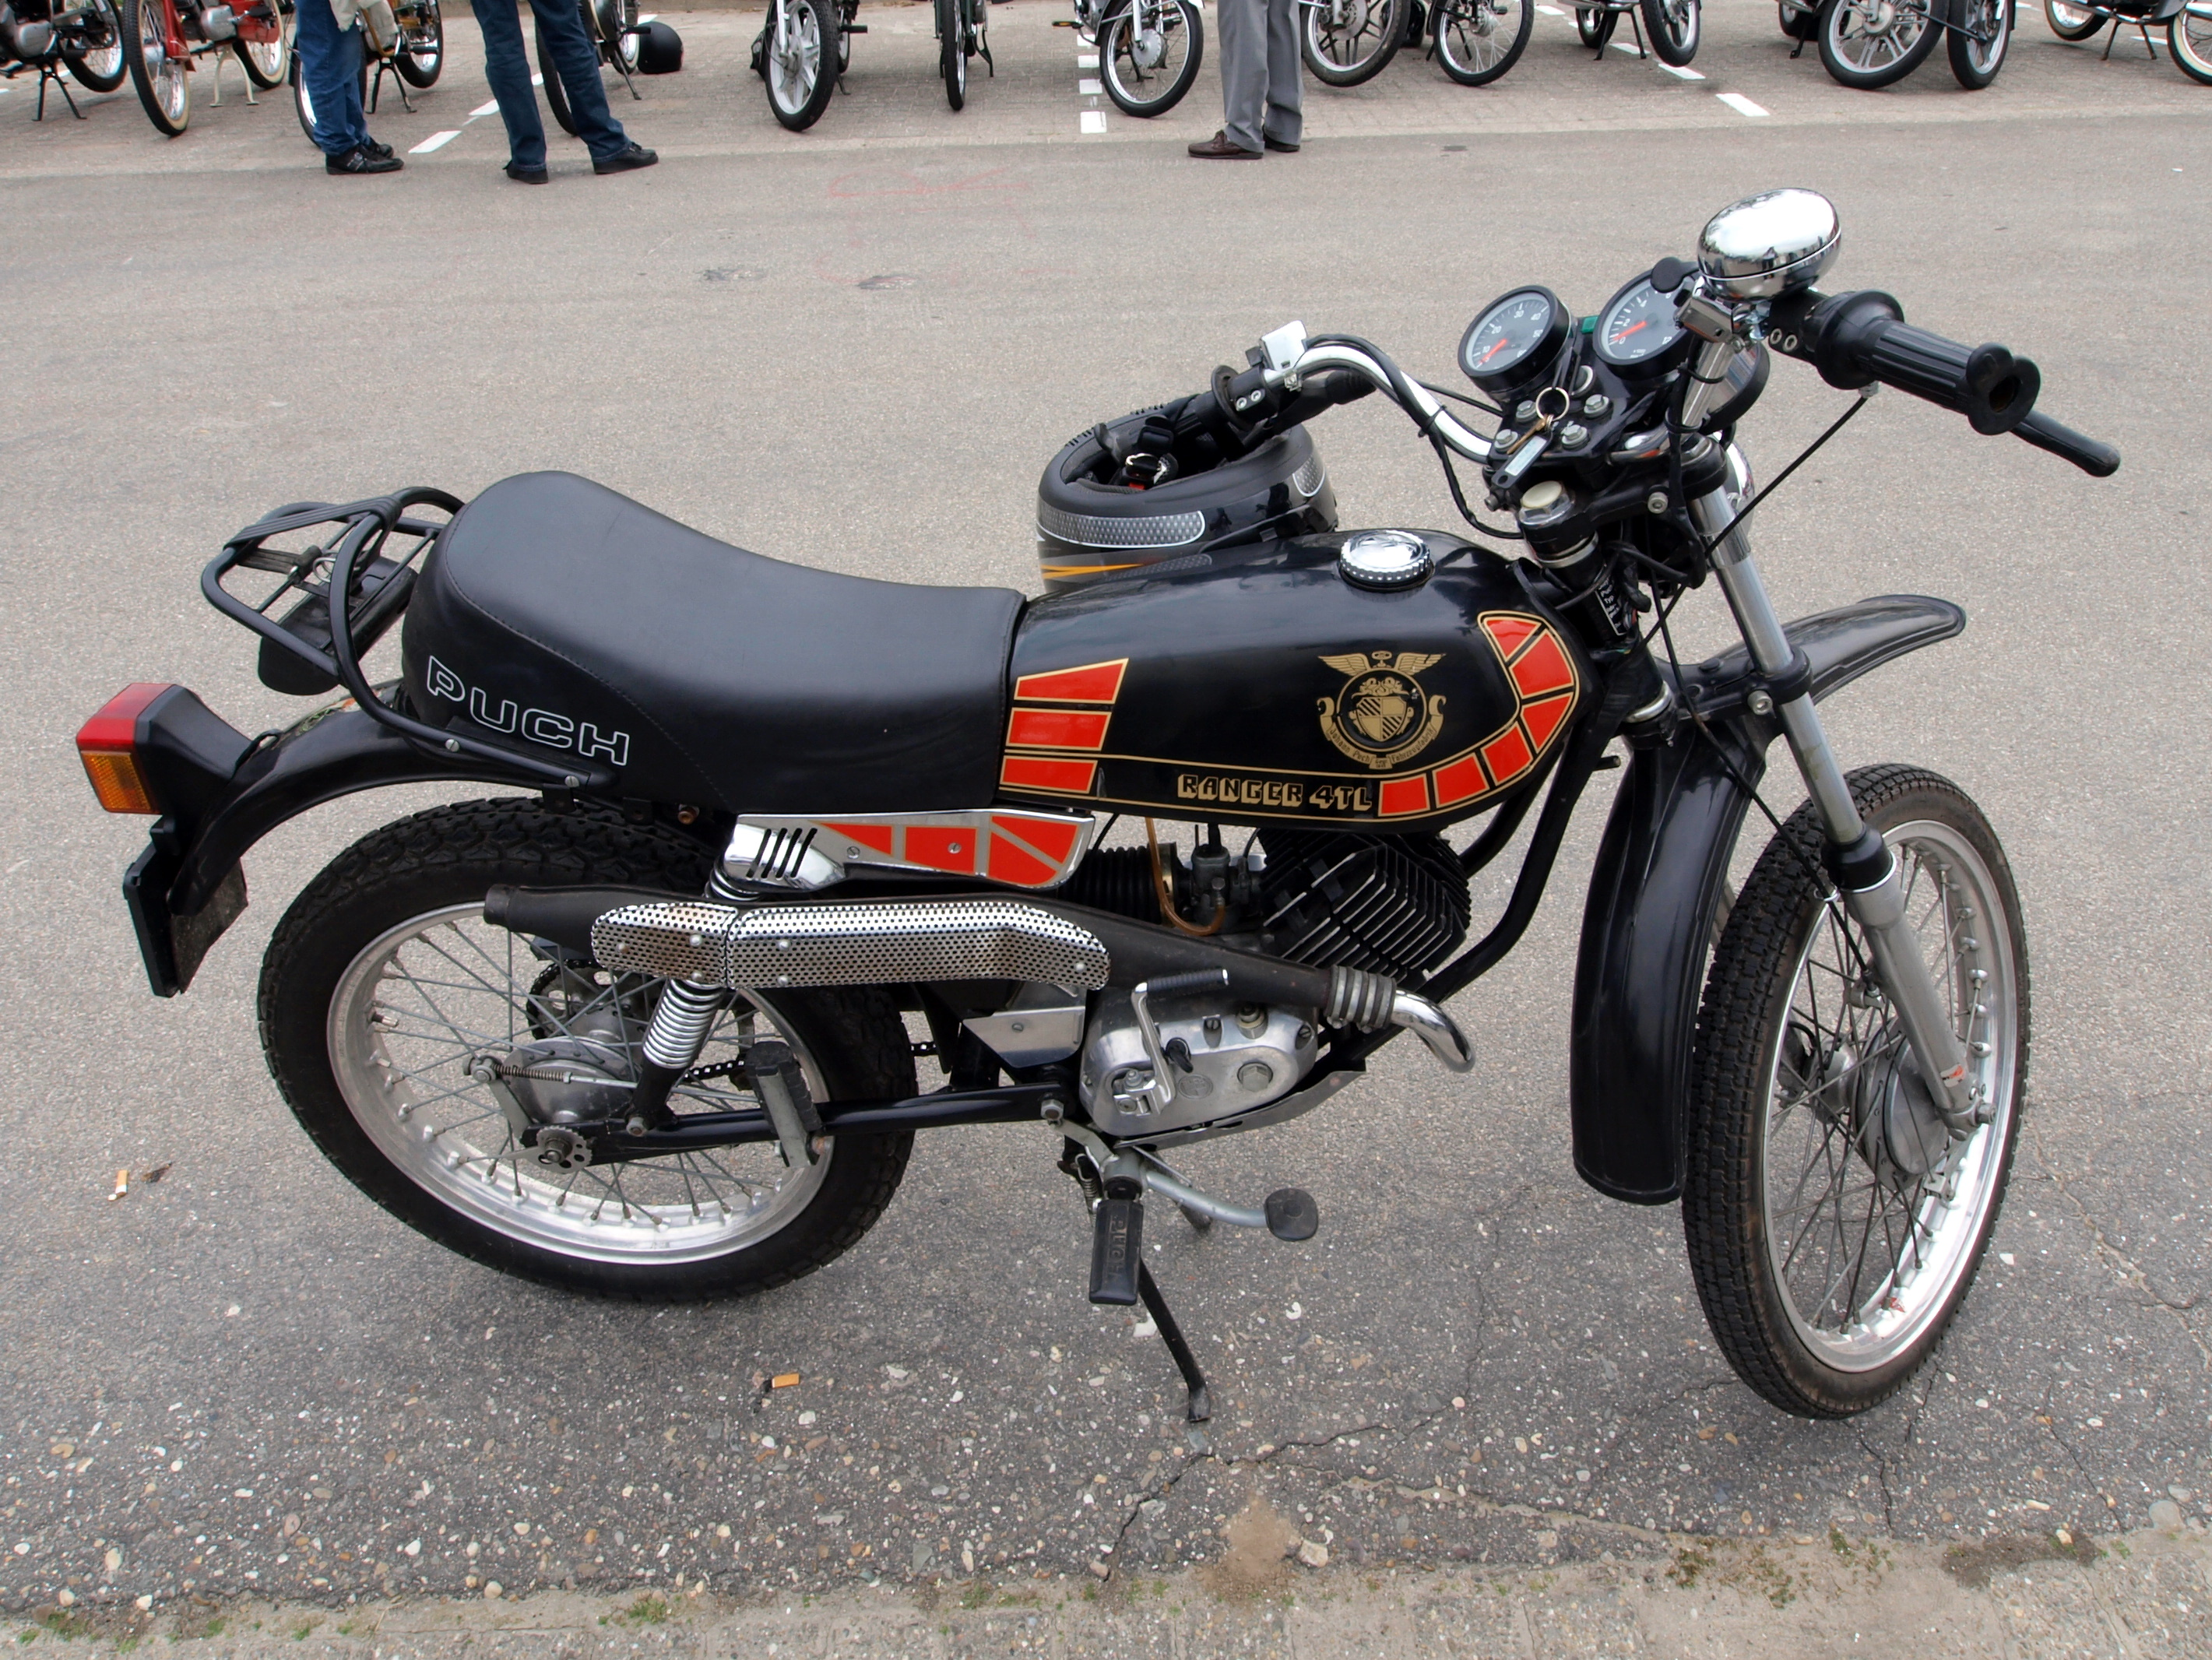 File:Puch Ranger 4TL p1.JPG - Wikimedia Commons